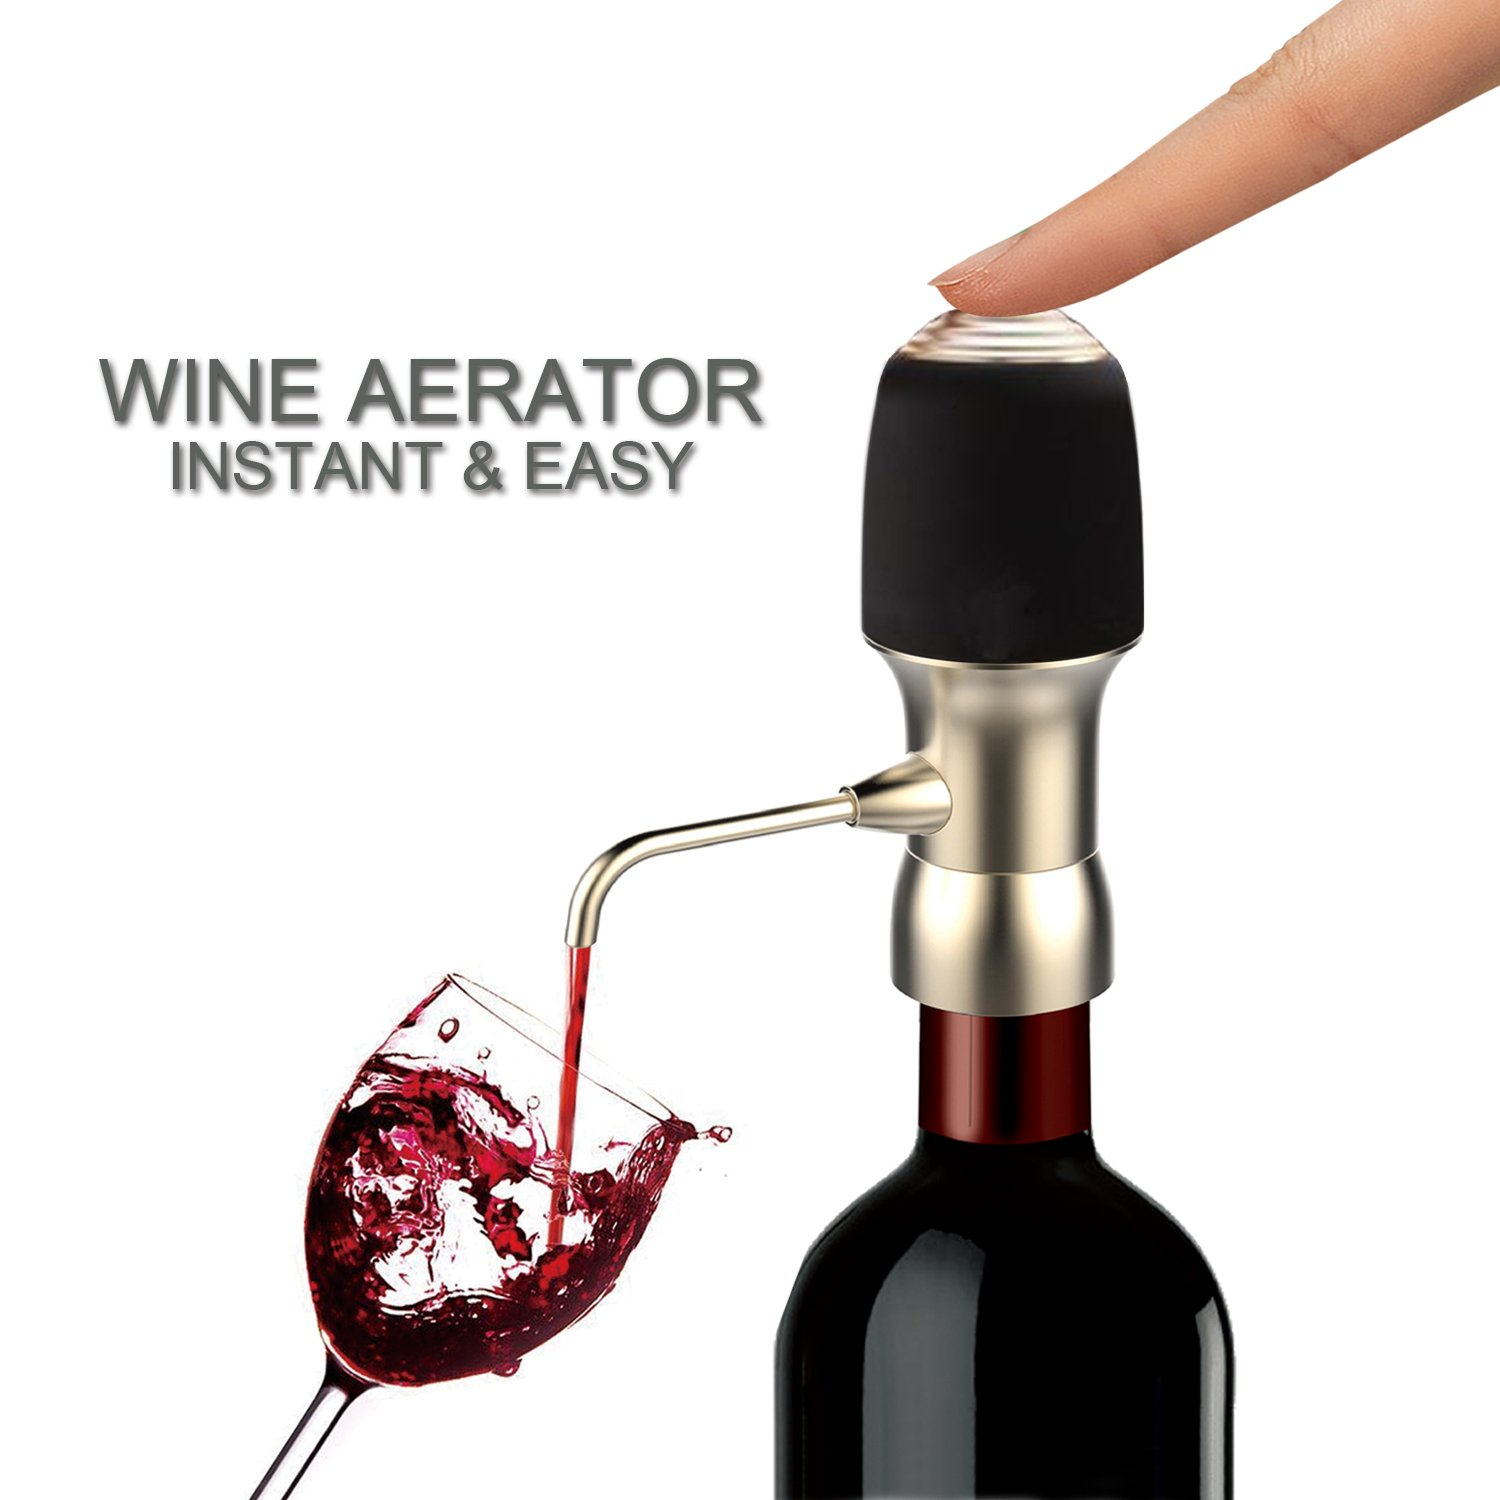 Wine Air Aerator, Spedal 1-Button Aeration & Decanter Electric Wine Aerator, Wine Aerator Pourer, Wine Decanter Aerator, Red Wine Aerator for Wine Bottle, Enhance Wine Flavor, Gift for Wine Lovers